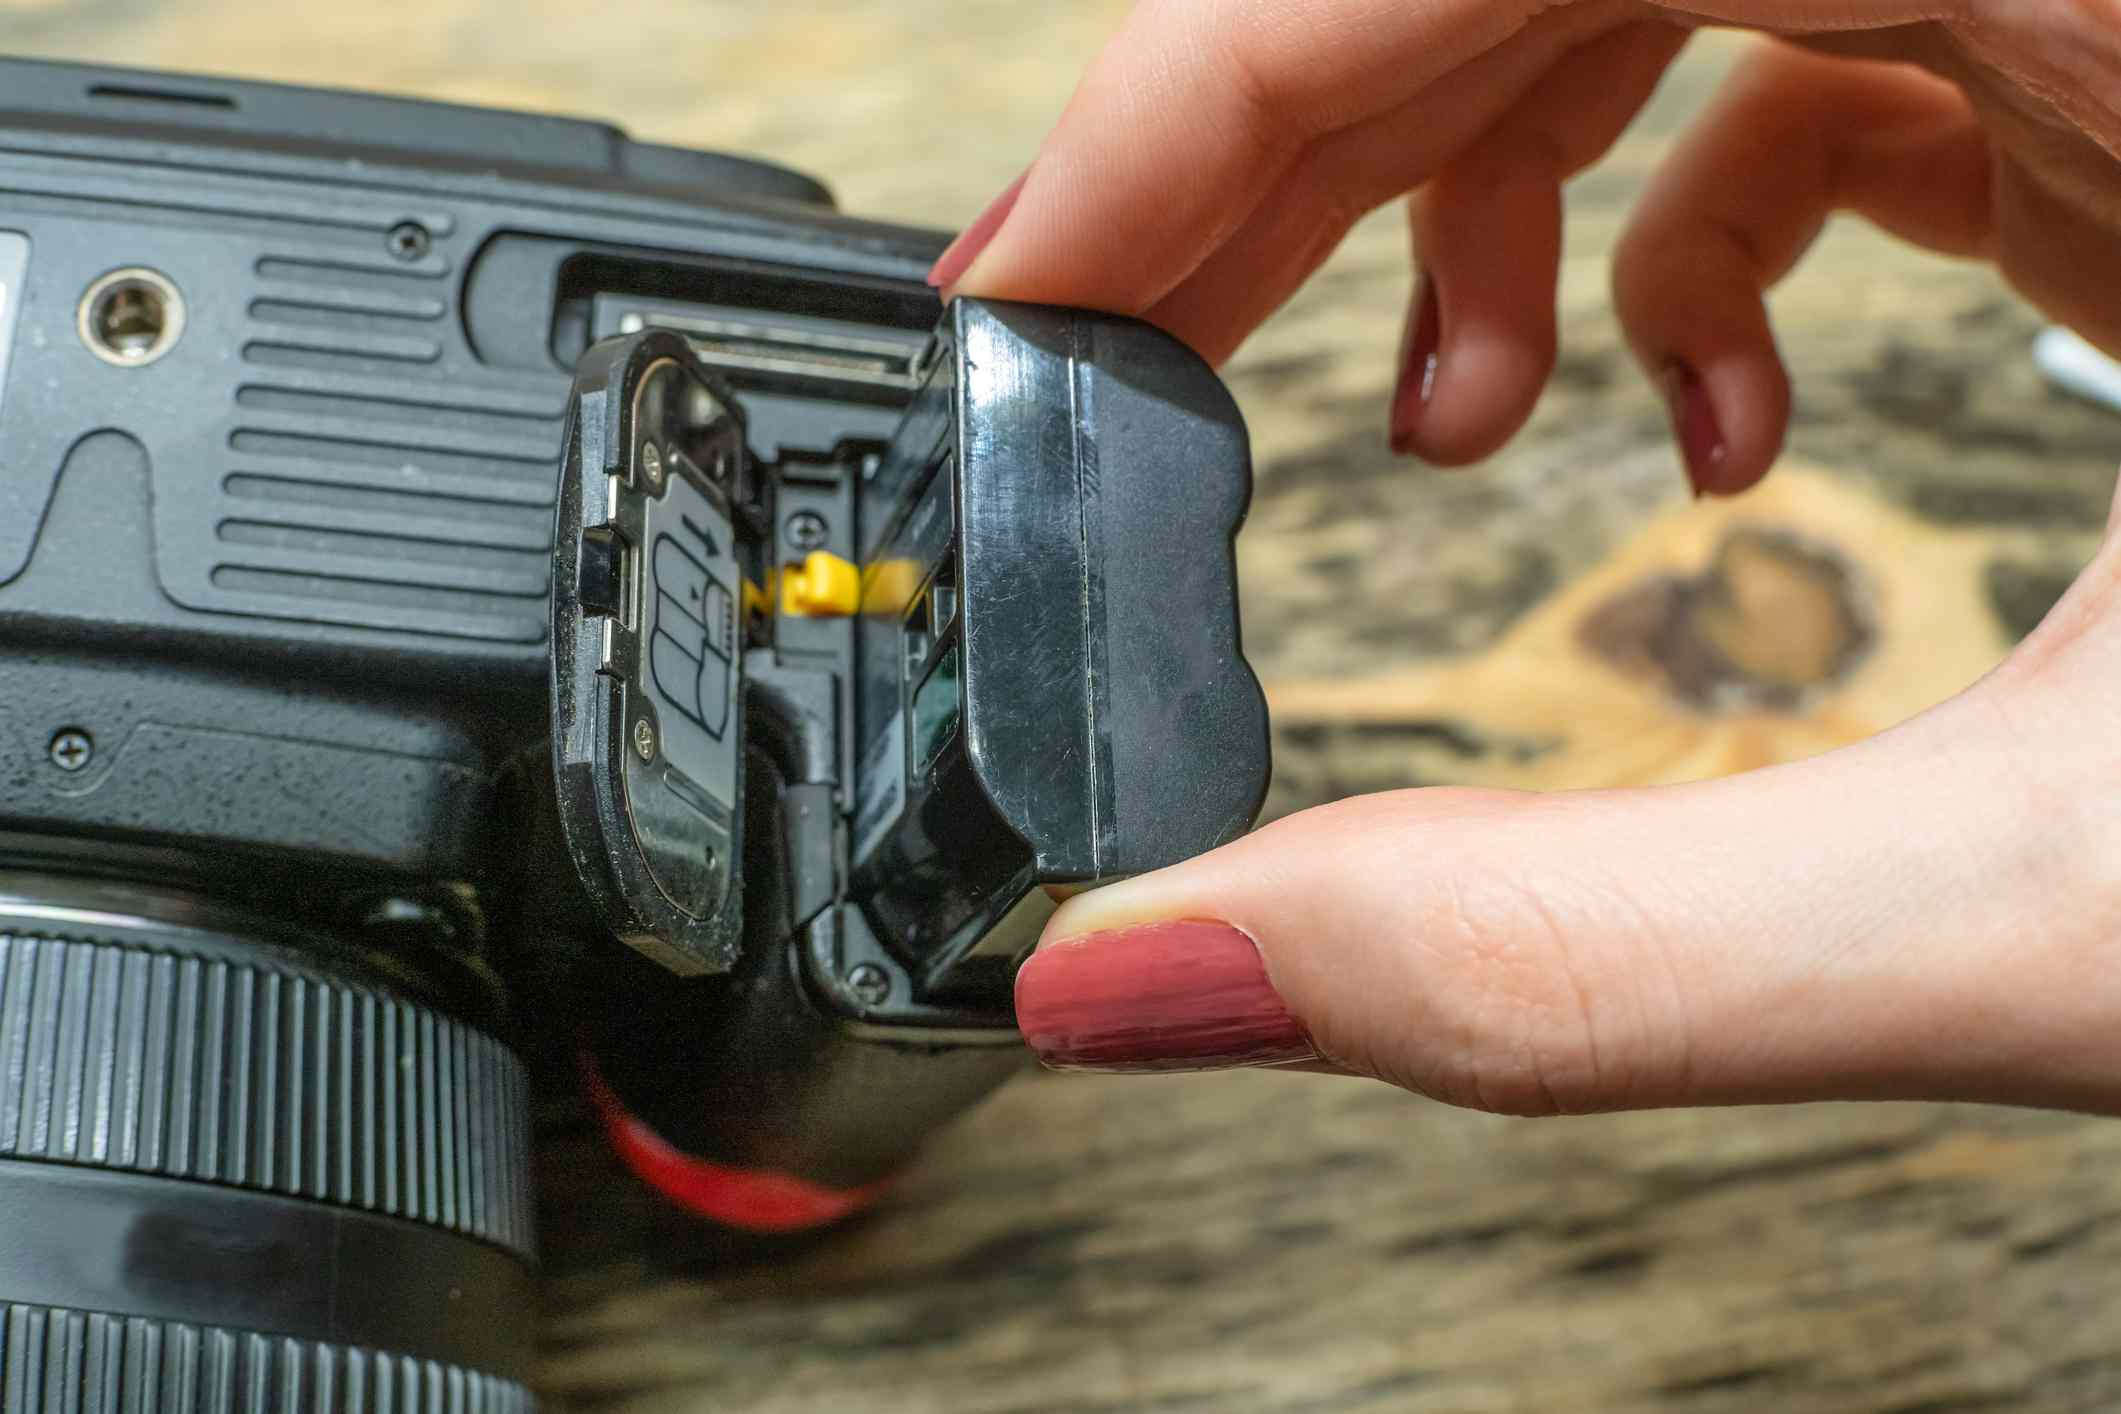 A battery in an SLR camera